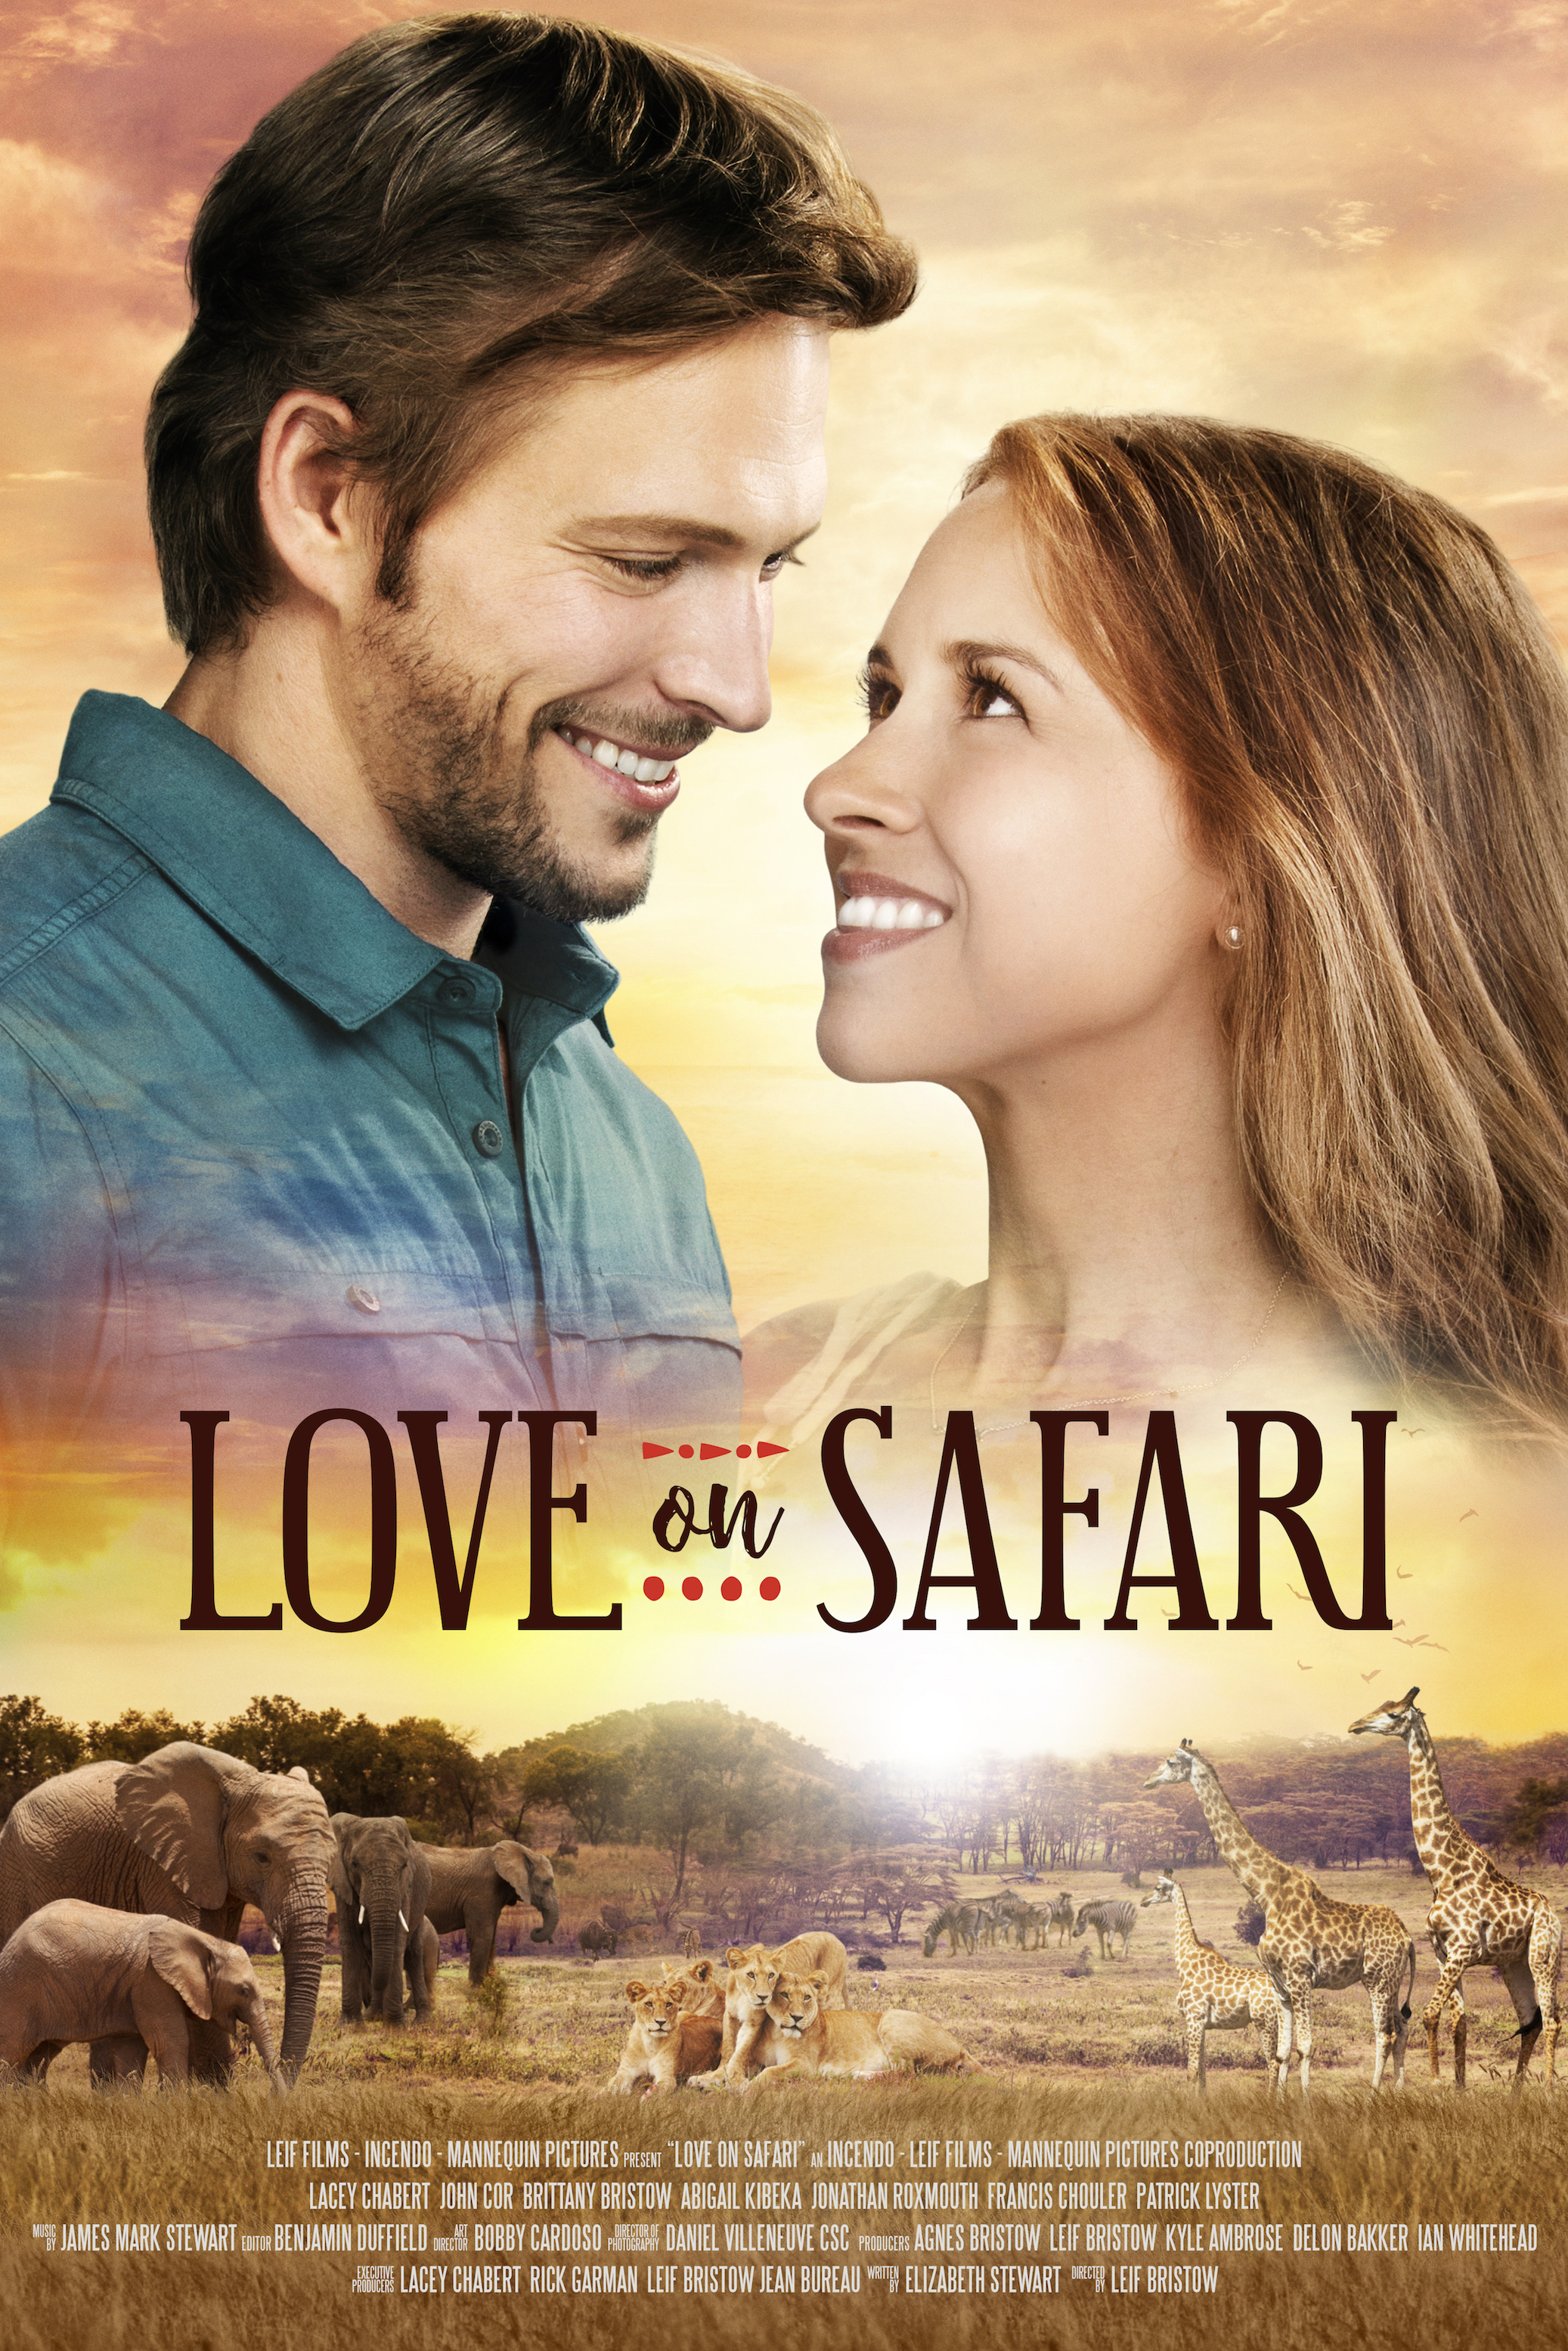 Film Love on Safari Streaming Complet - When Kira Slater inherits an Animal Reserve in South Africa she must decide whether to...